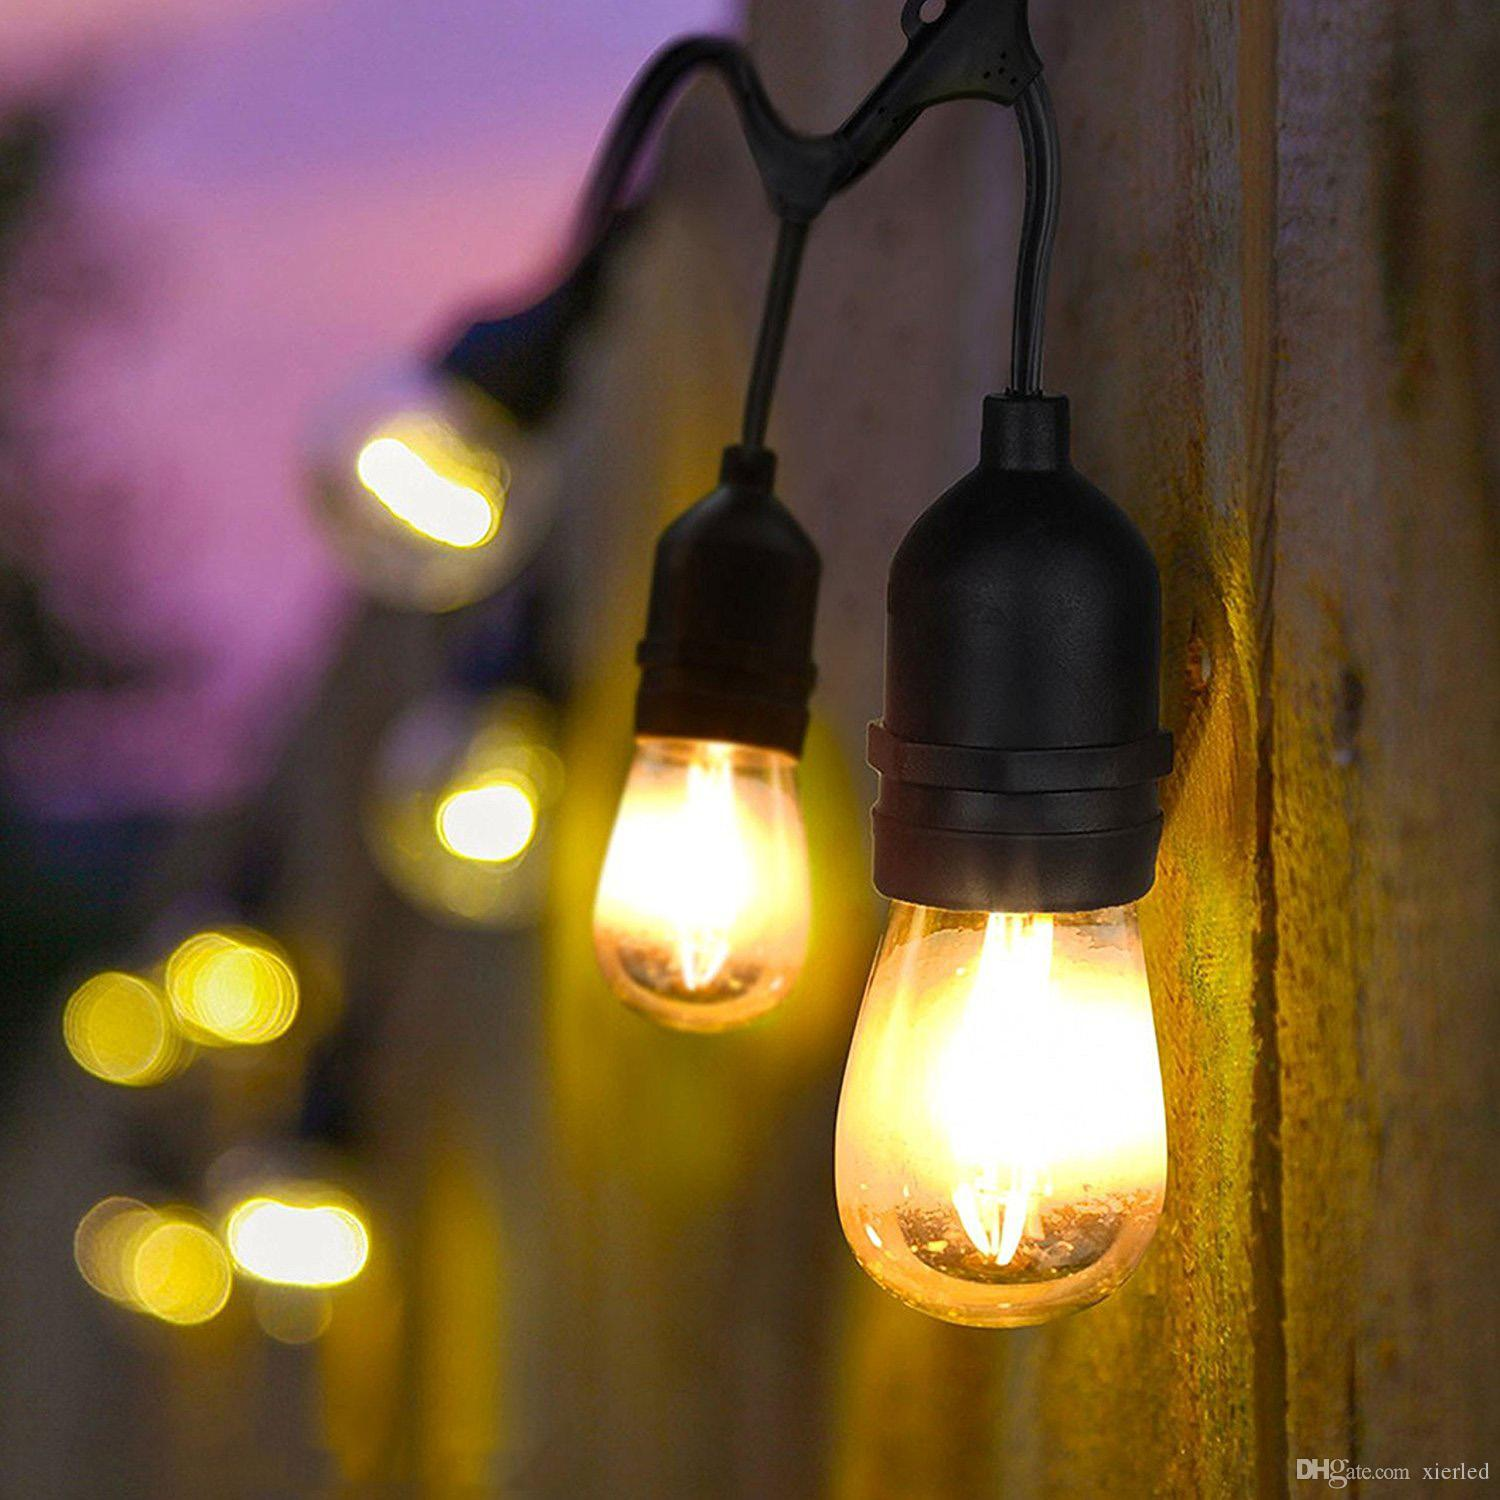 Outdoor String Lights With Edison Vintage 15 S14 Bulbs15 Dropped SocketsWeatherproofPerfect For Patio Cafe Umbrella Bistro Yard Flower String Lights ... & Outdoor String Lights With Edison Vintage 15 S14 Bulbs15 Dropped ...